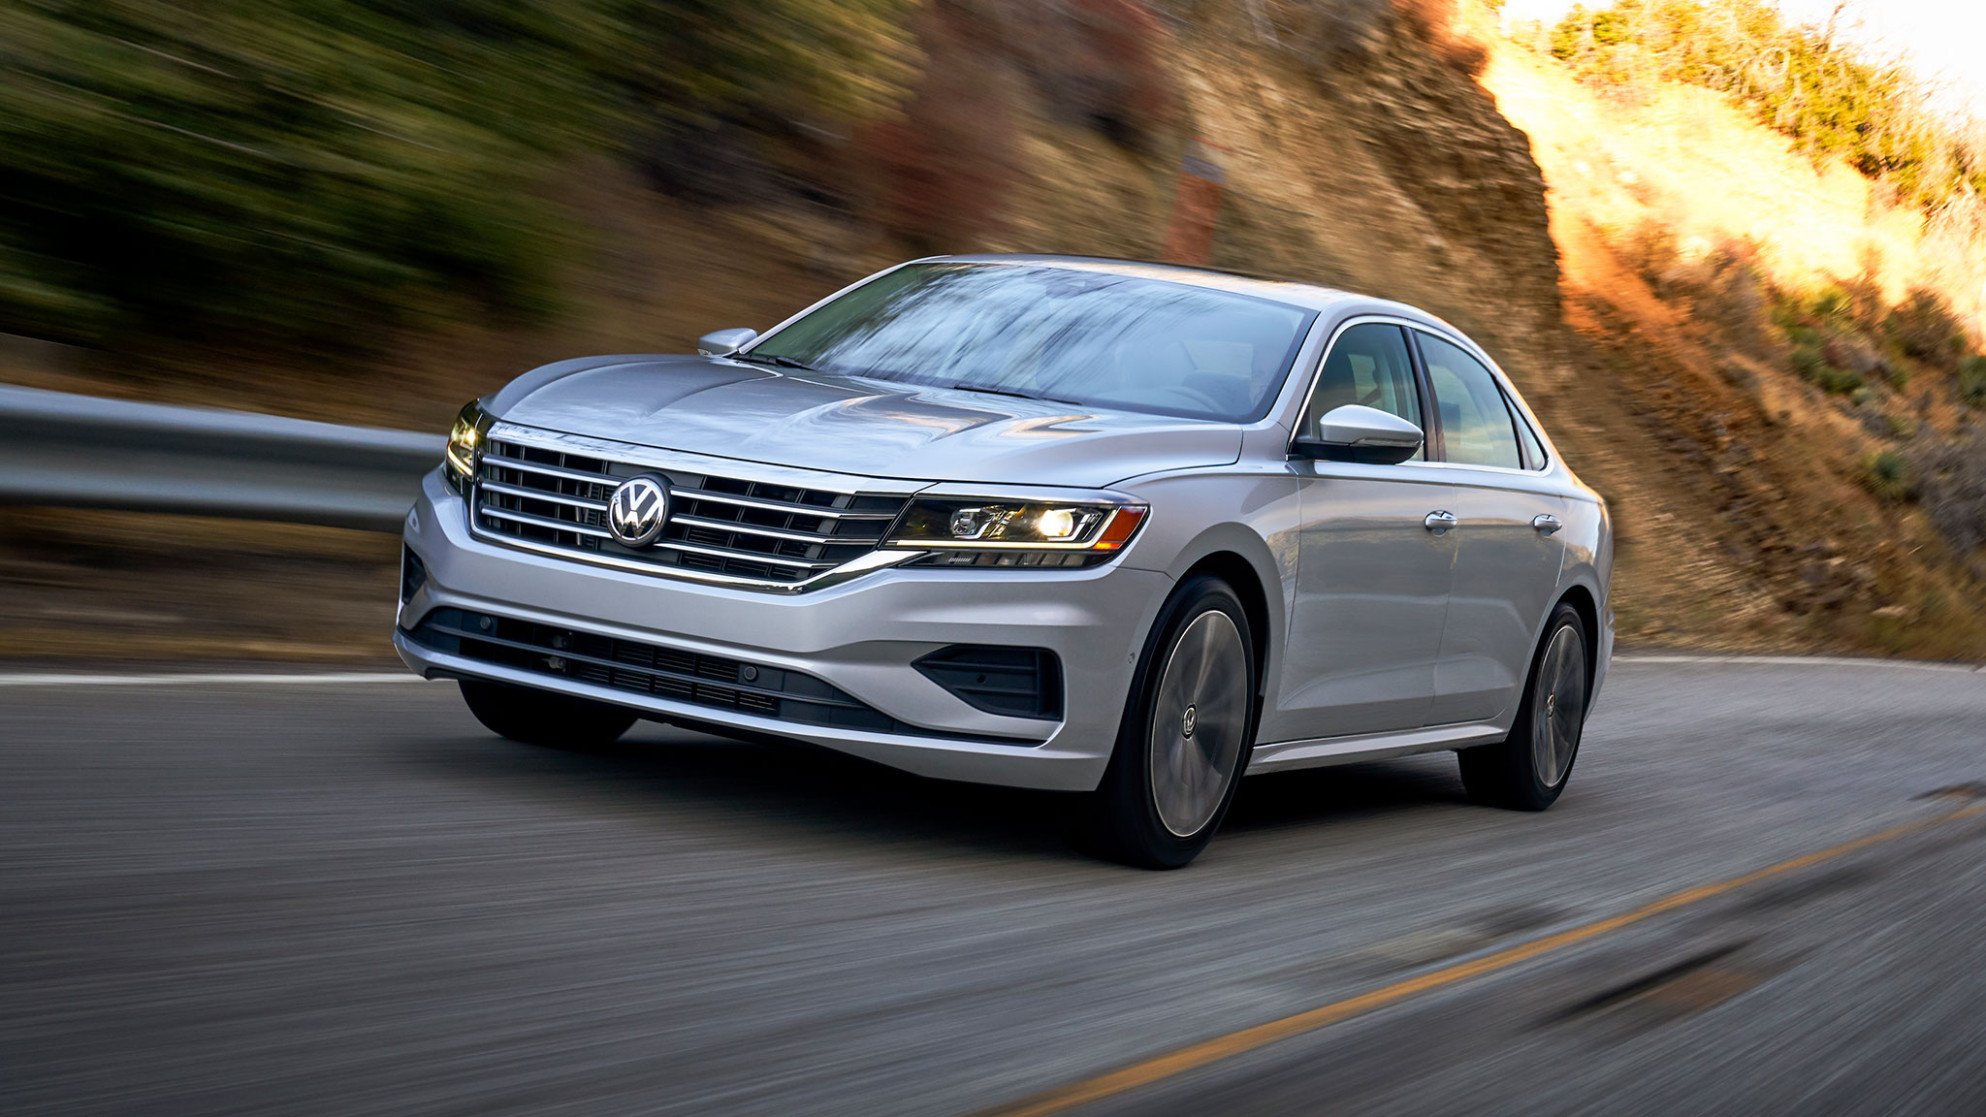 Review: The Improved 8 Volkswagen Passat Is a Missed Opportunity